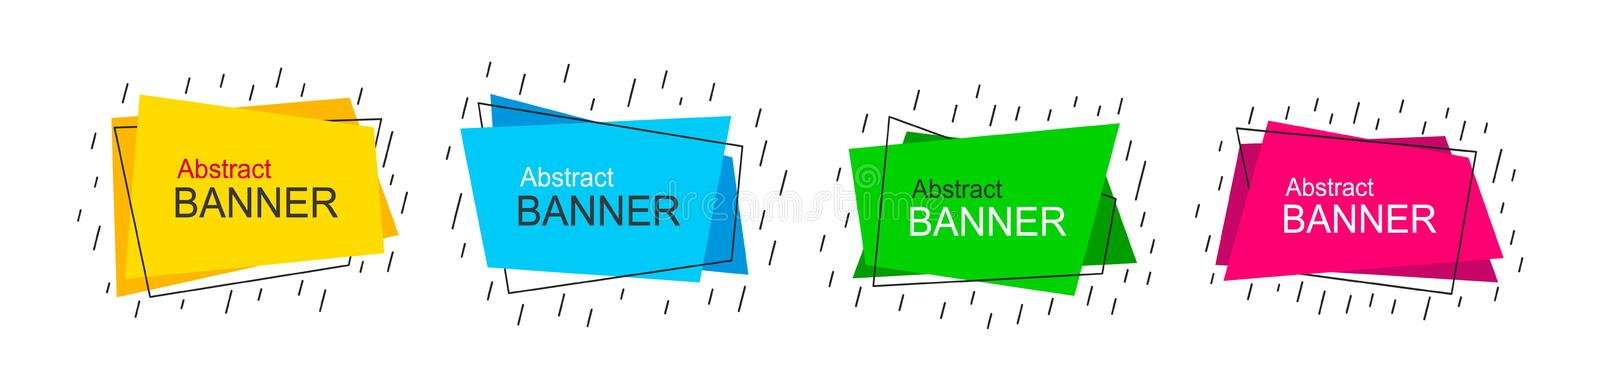 Vector abstract banners. Flat style geometric shapes. royalty free illustration